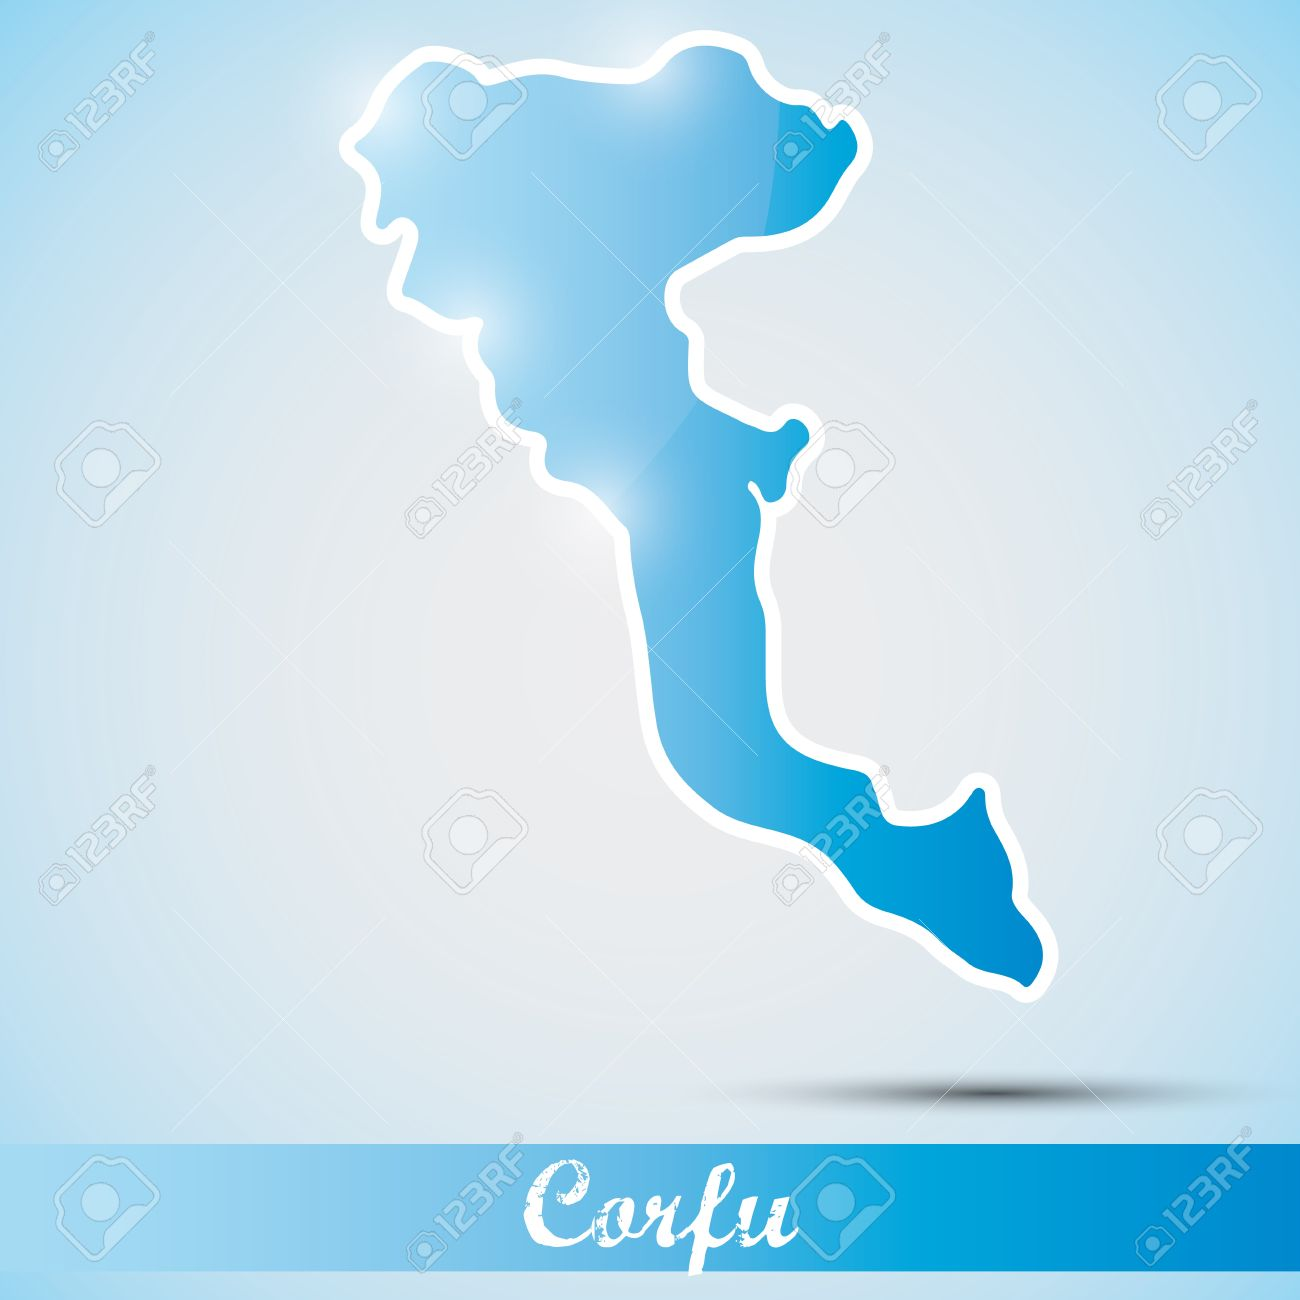 Shiny Icon In Form Of Corfu Island, Greece Royalty Free Cliparts.